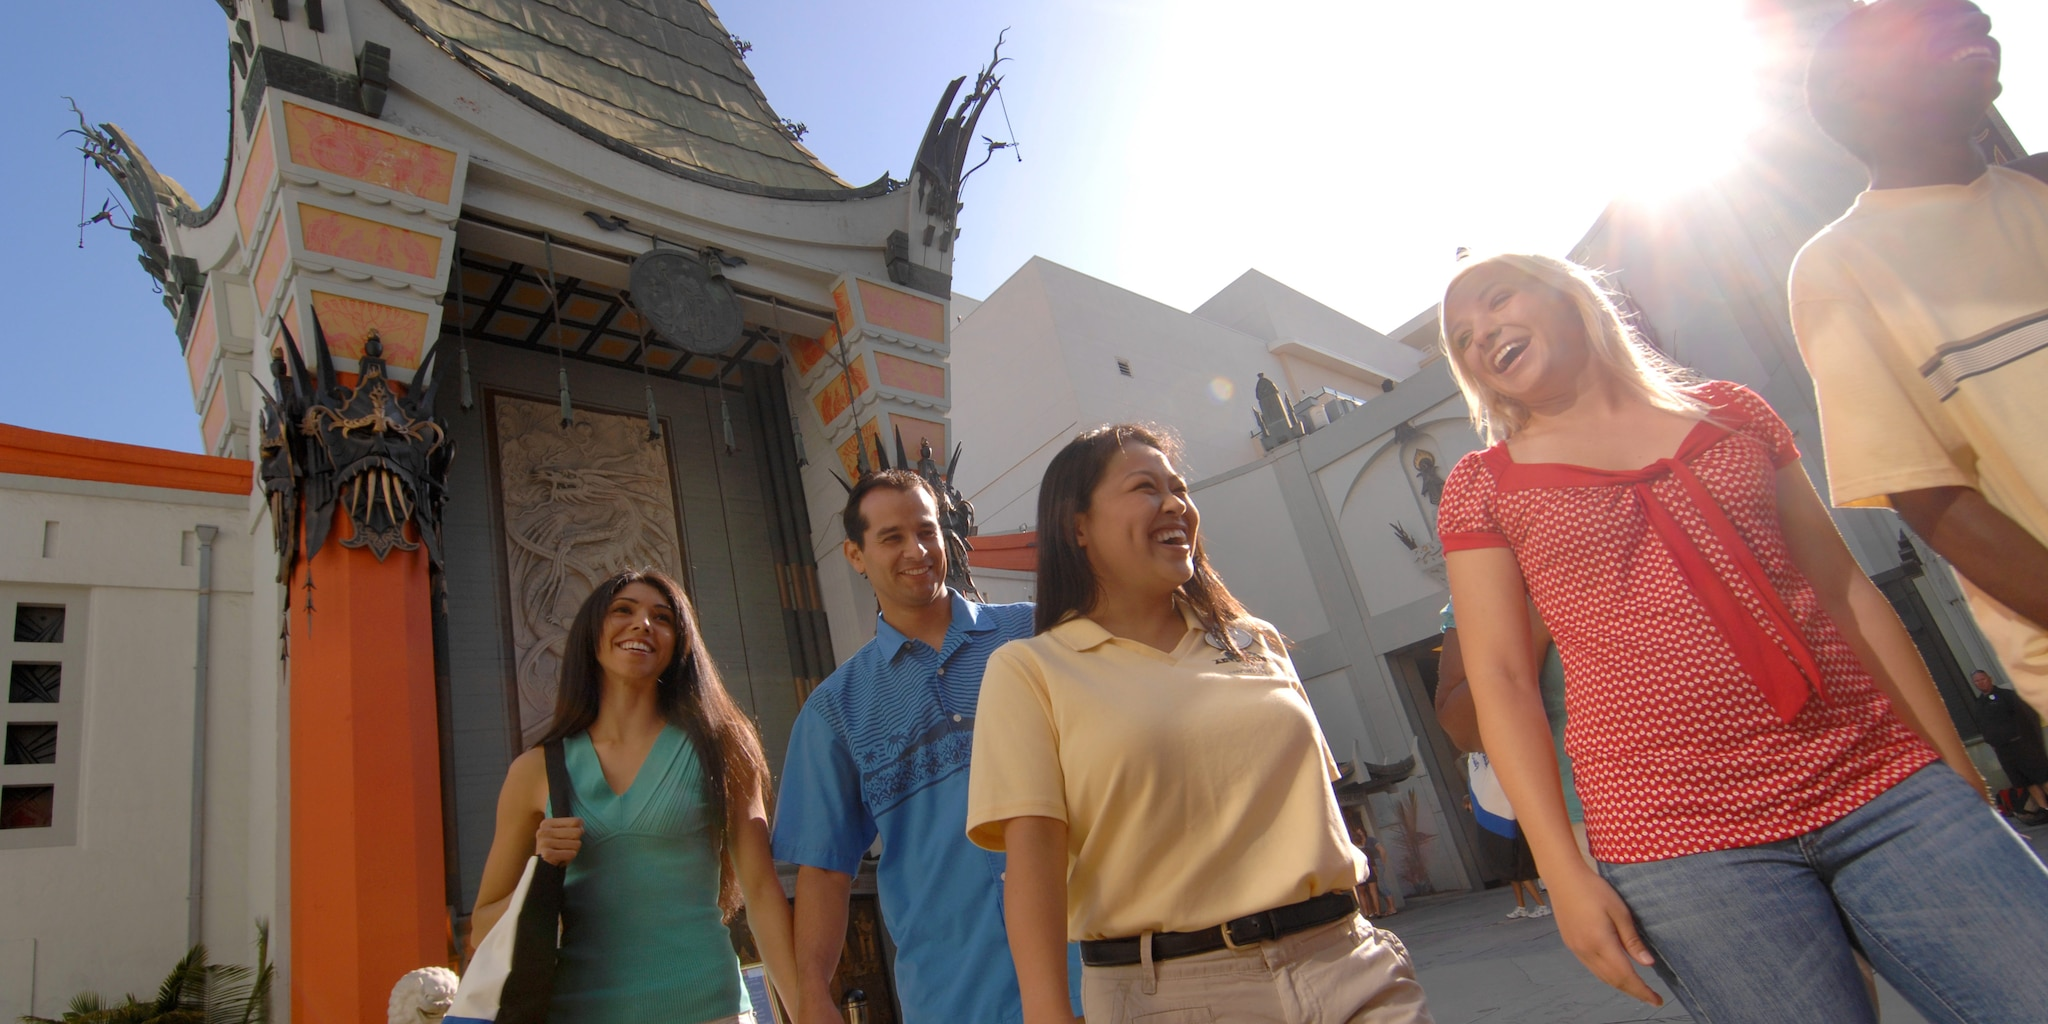 A group leaves the Chinese Theater in Hollywood